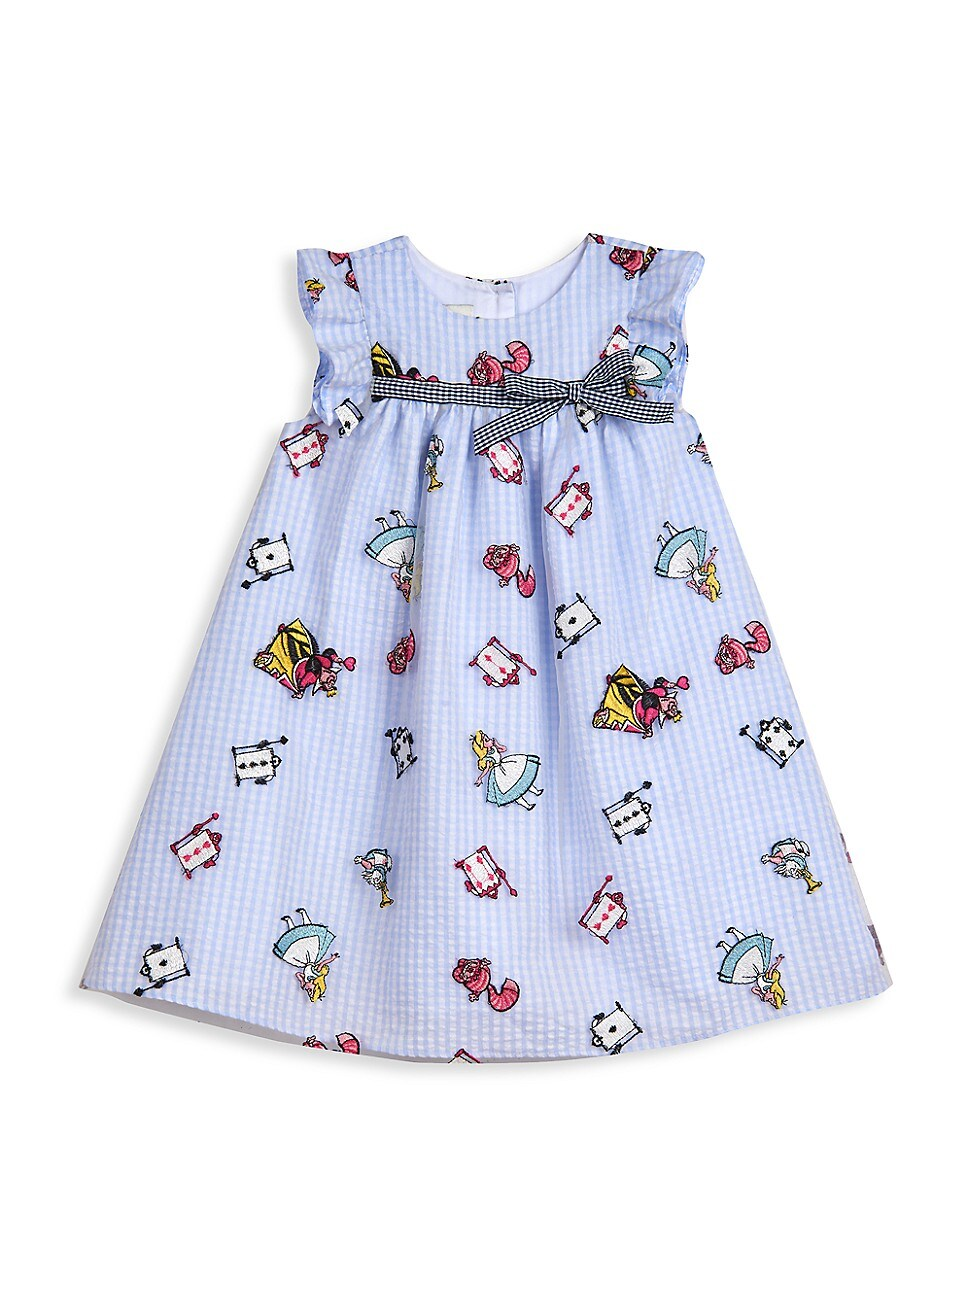 Pippa & Julie Dresses LITTLE GIRL'S DISNEY X PIPPA AND JULIE ALICE EMBROIDERED FLOAT DRESS